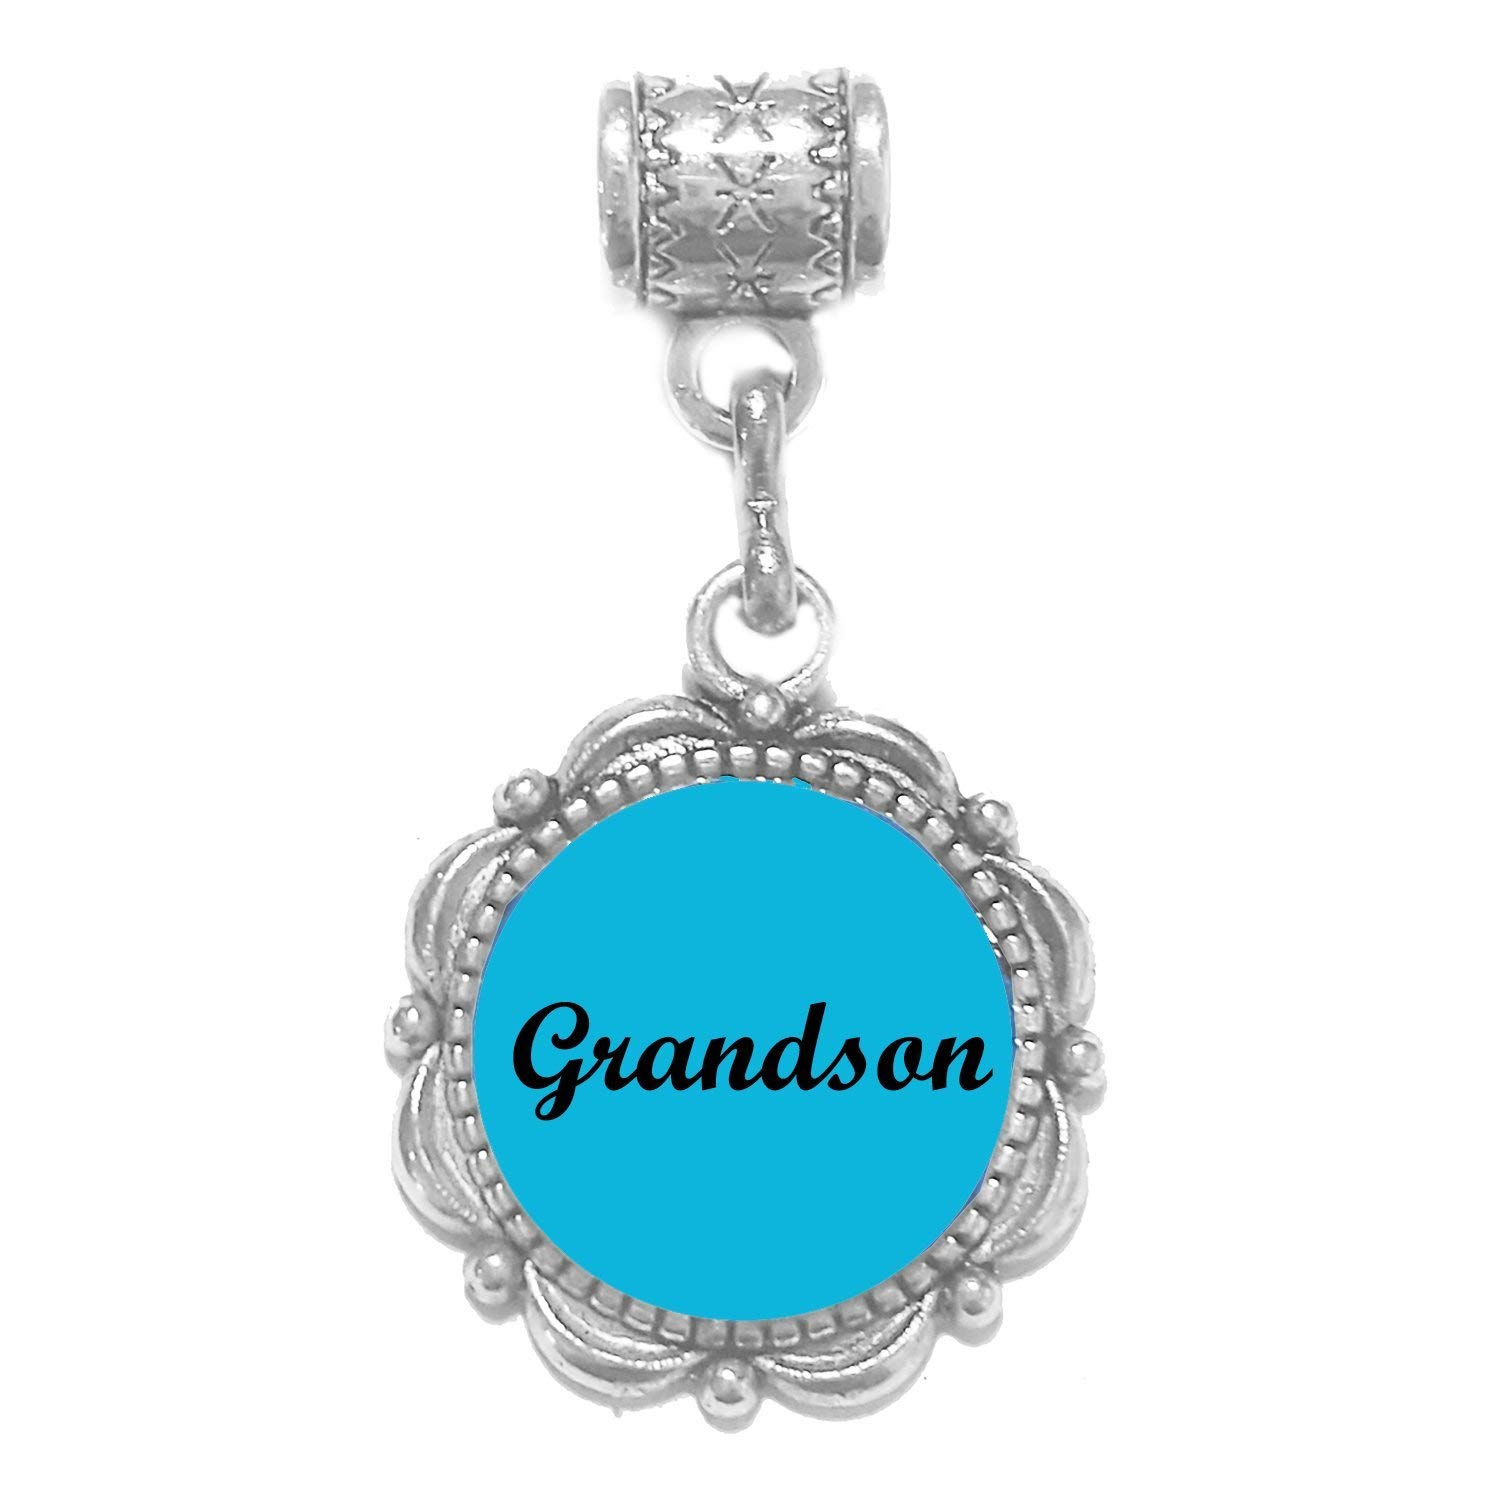 """""""Grandson charm"""" Tibetan Silver Hanging charm for large hole snake chain charm bracelet, or add to a neck chain, pendant necklace or key chain"""